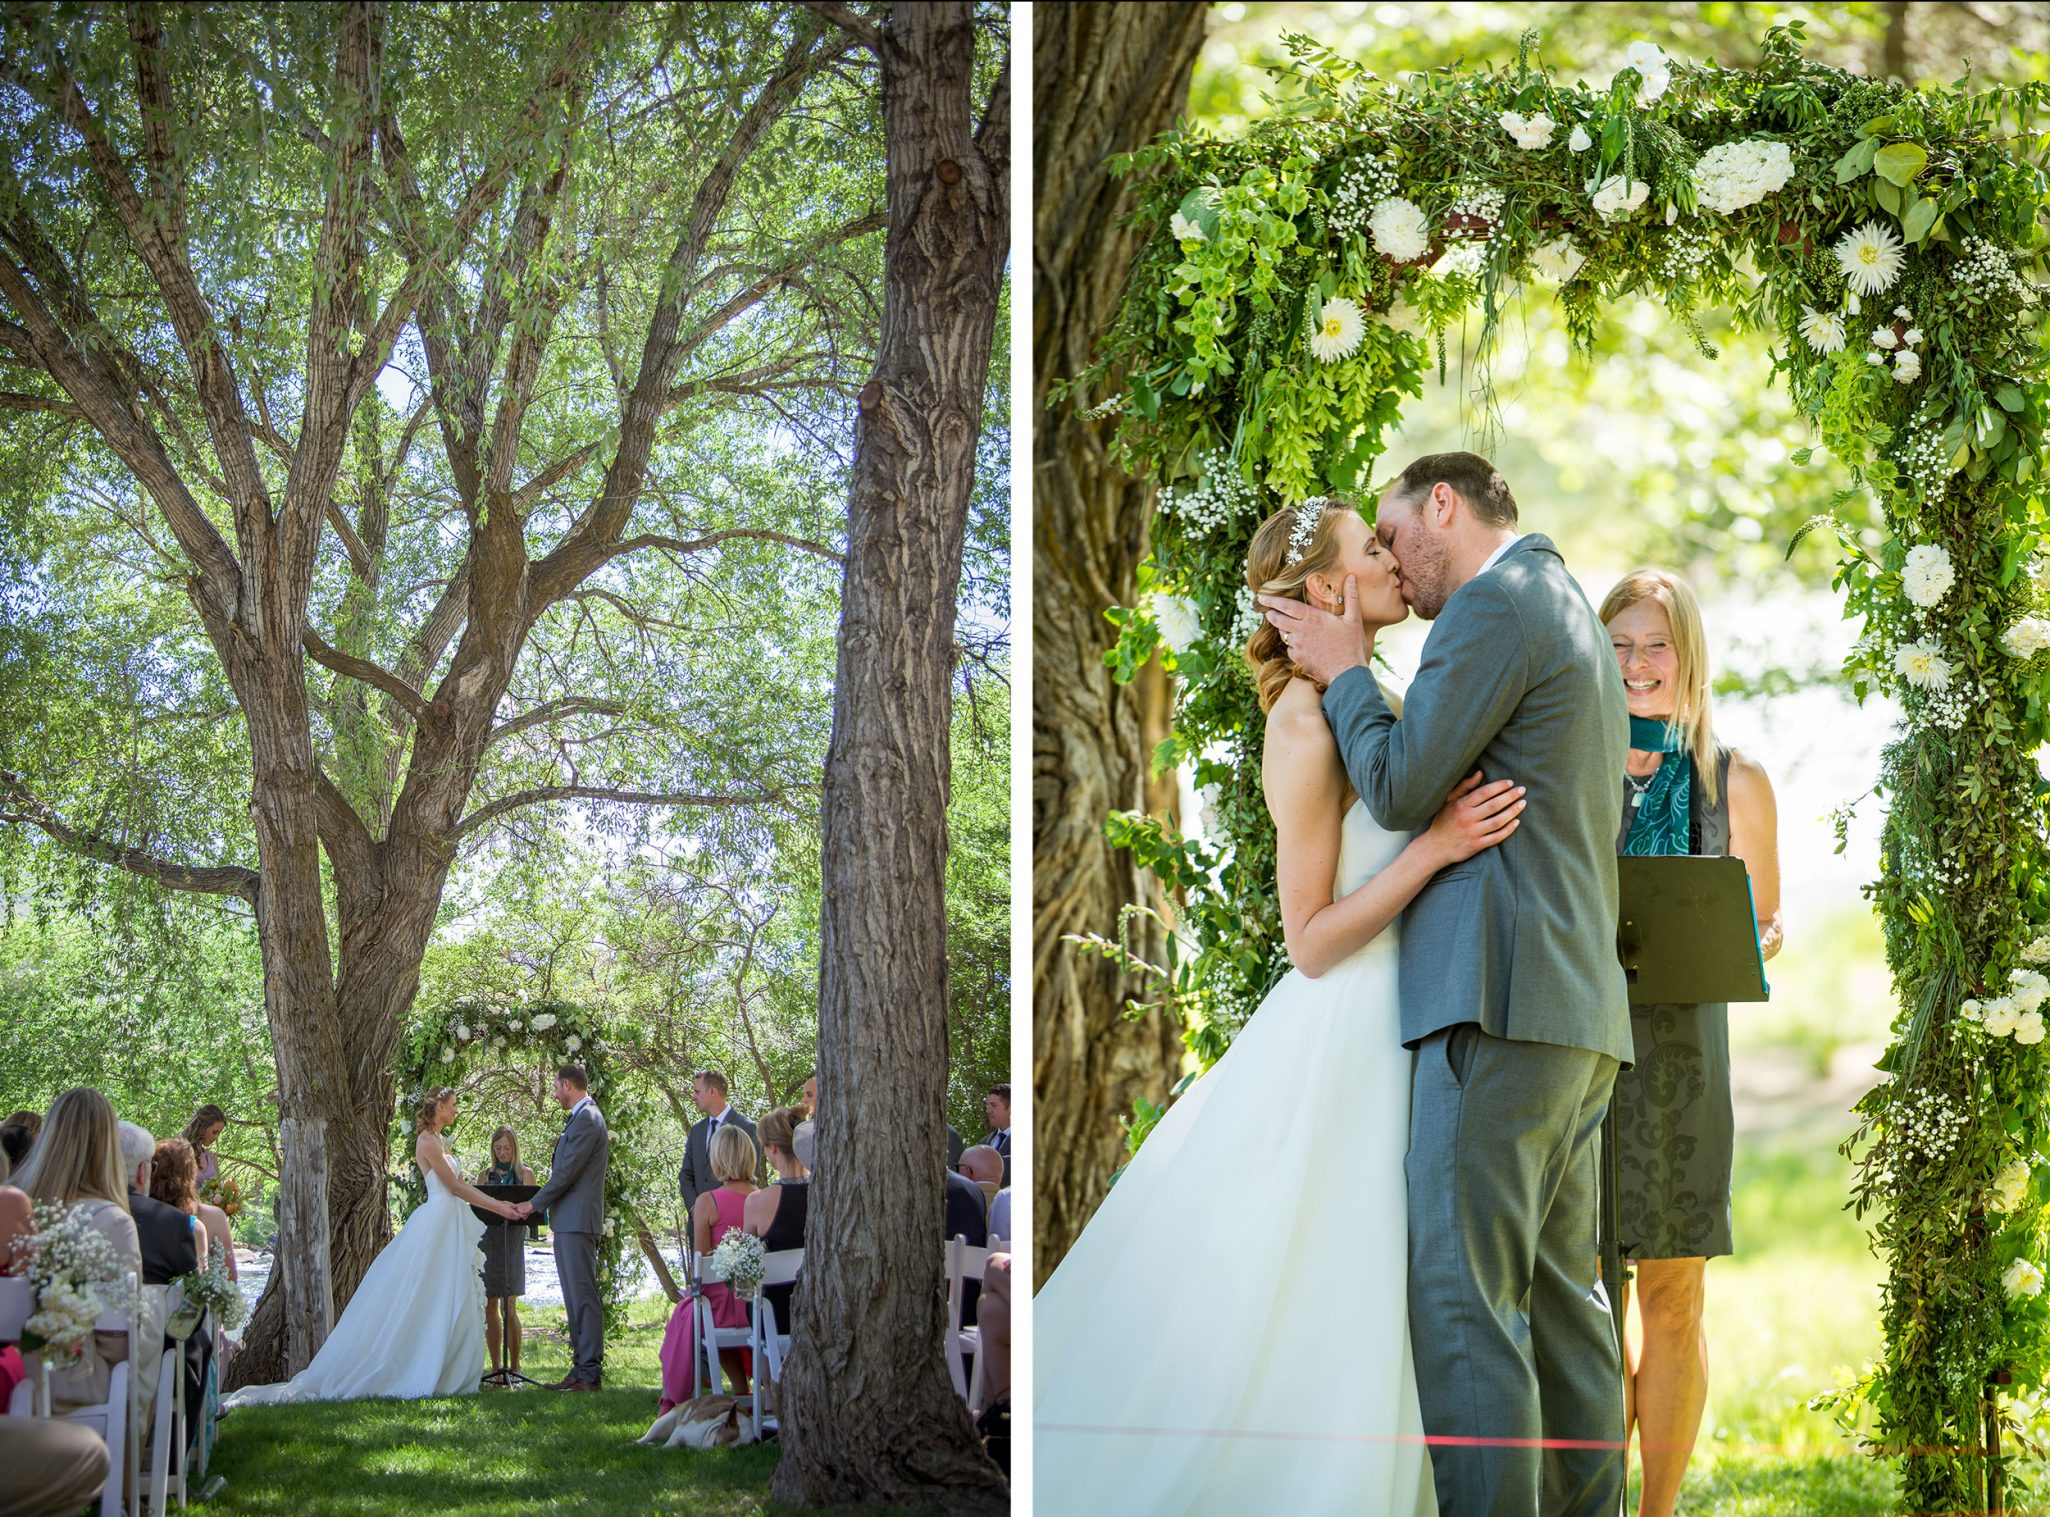 outdoor wedding ceremony via Durango Weddings Magazine